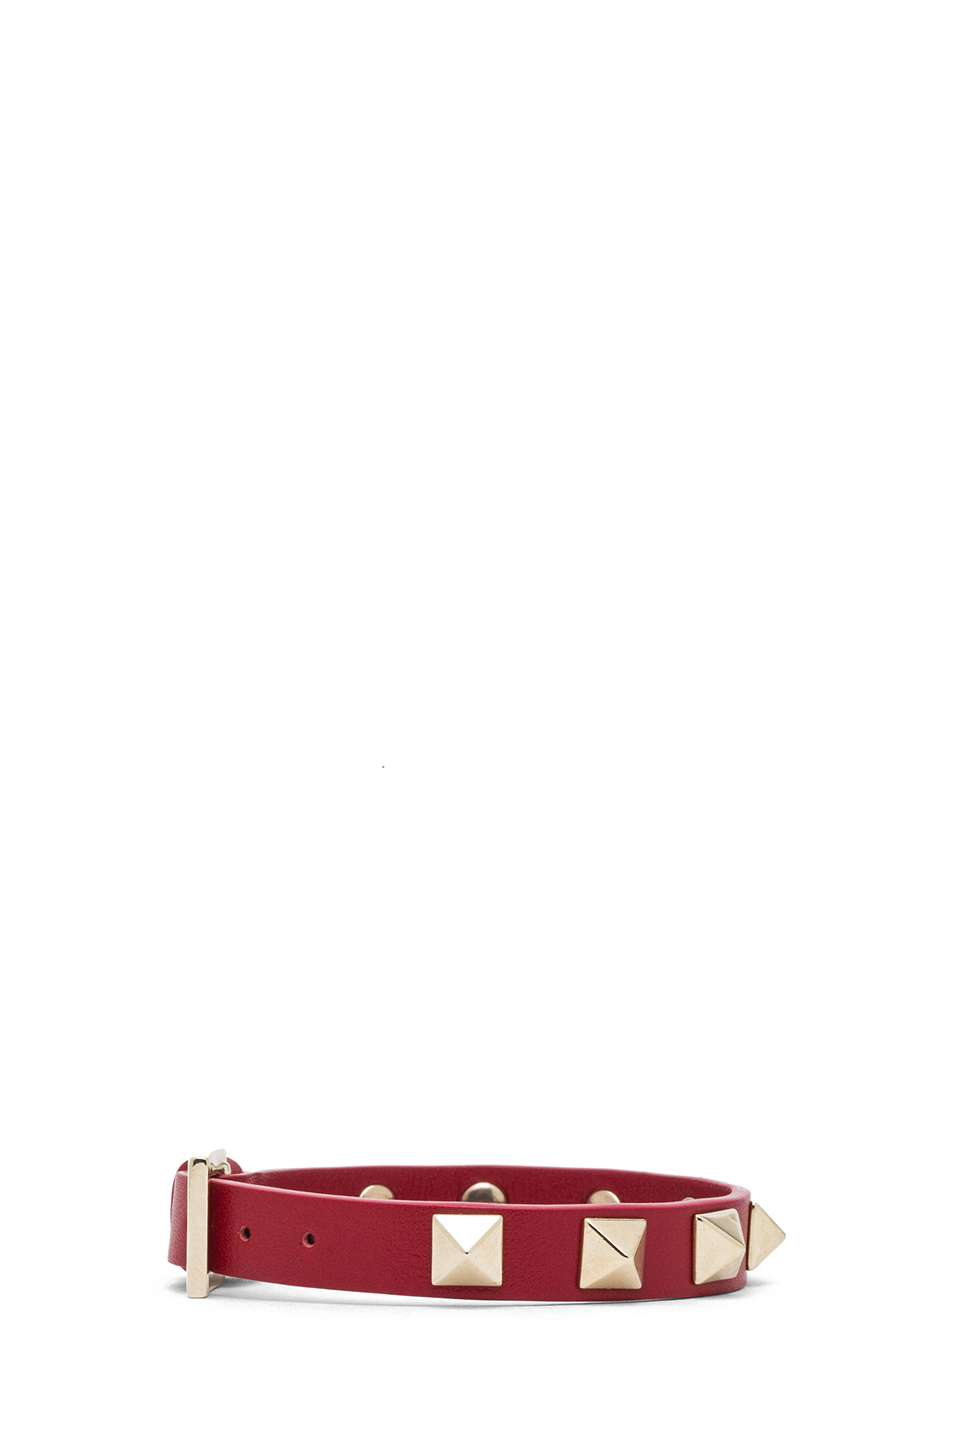 Valentino|Small Rockstud Calfskin Bracelet in Red